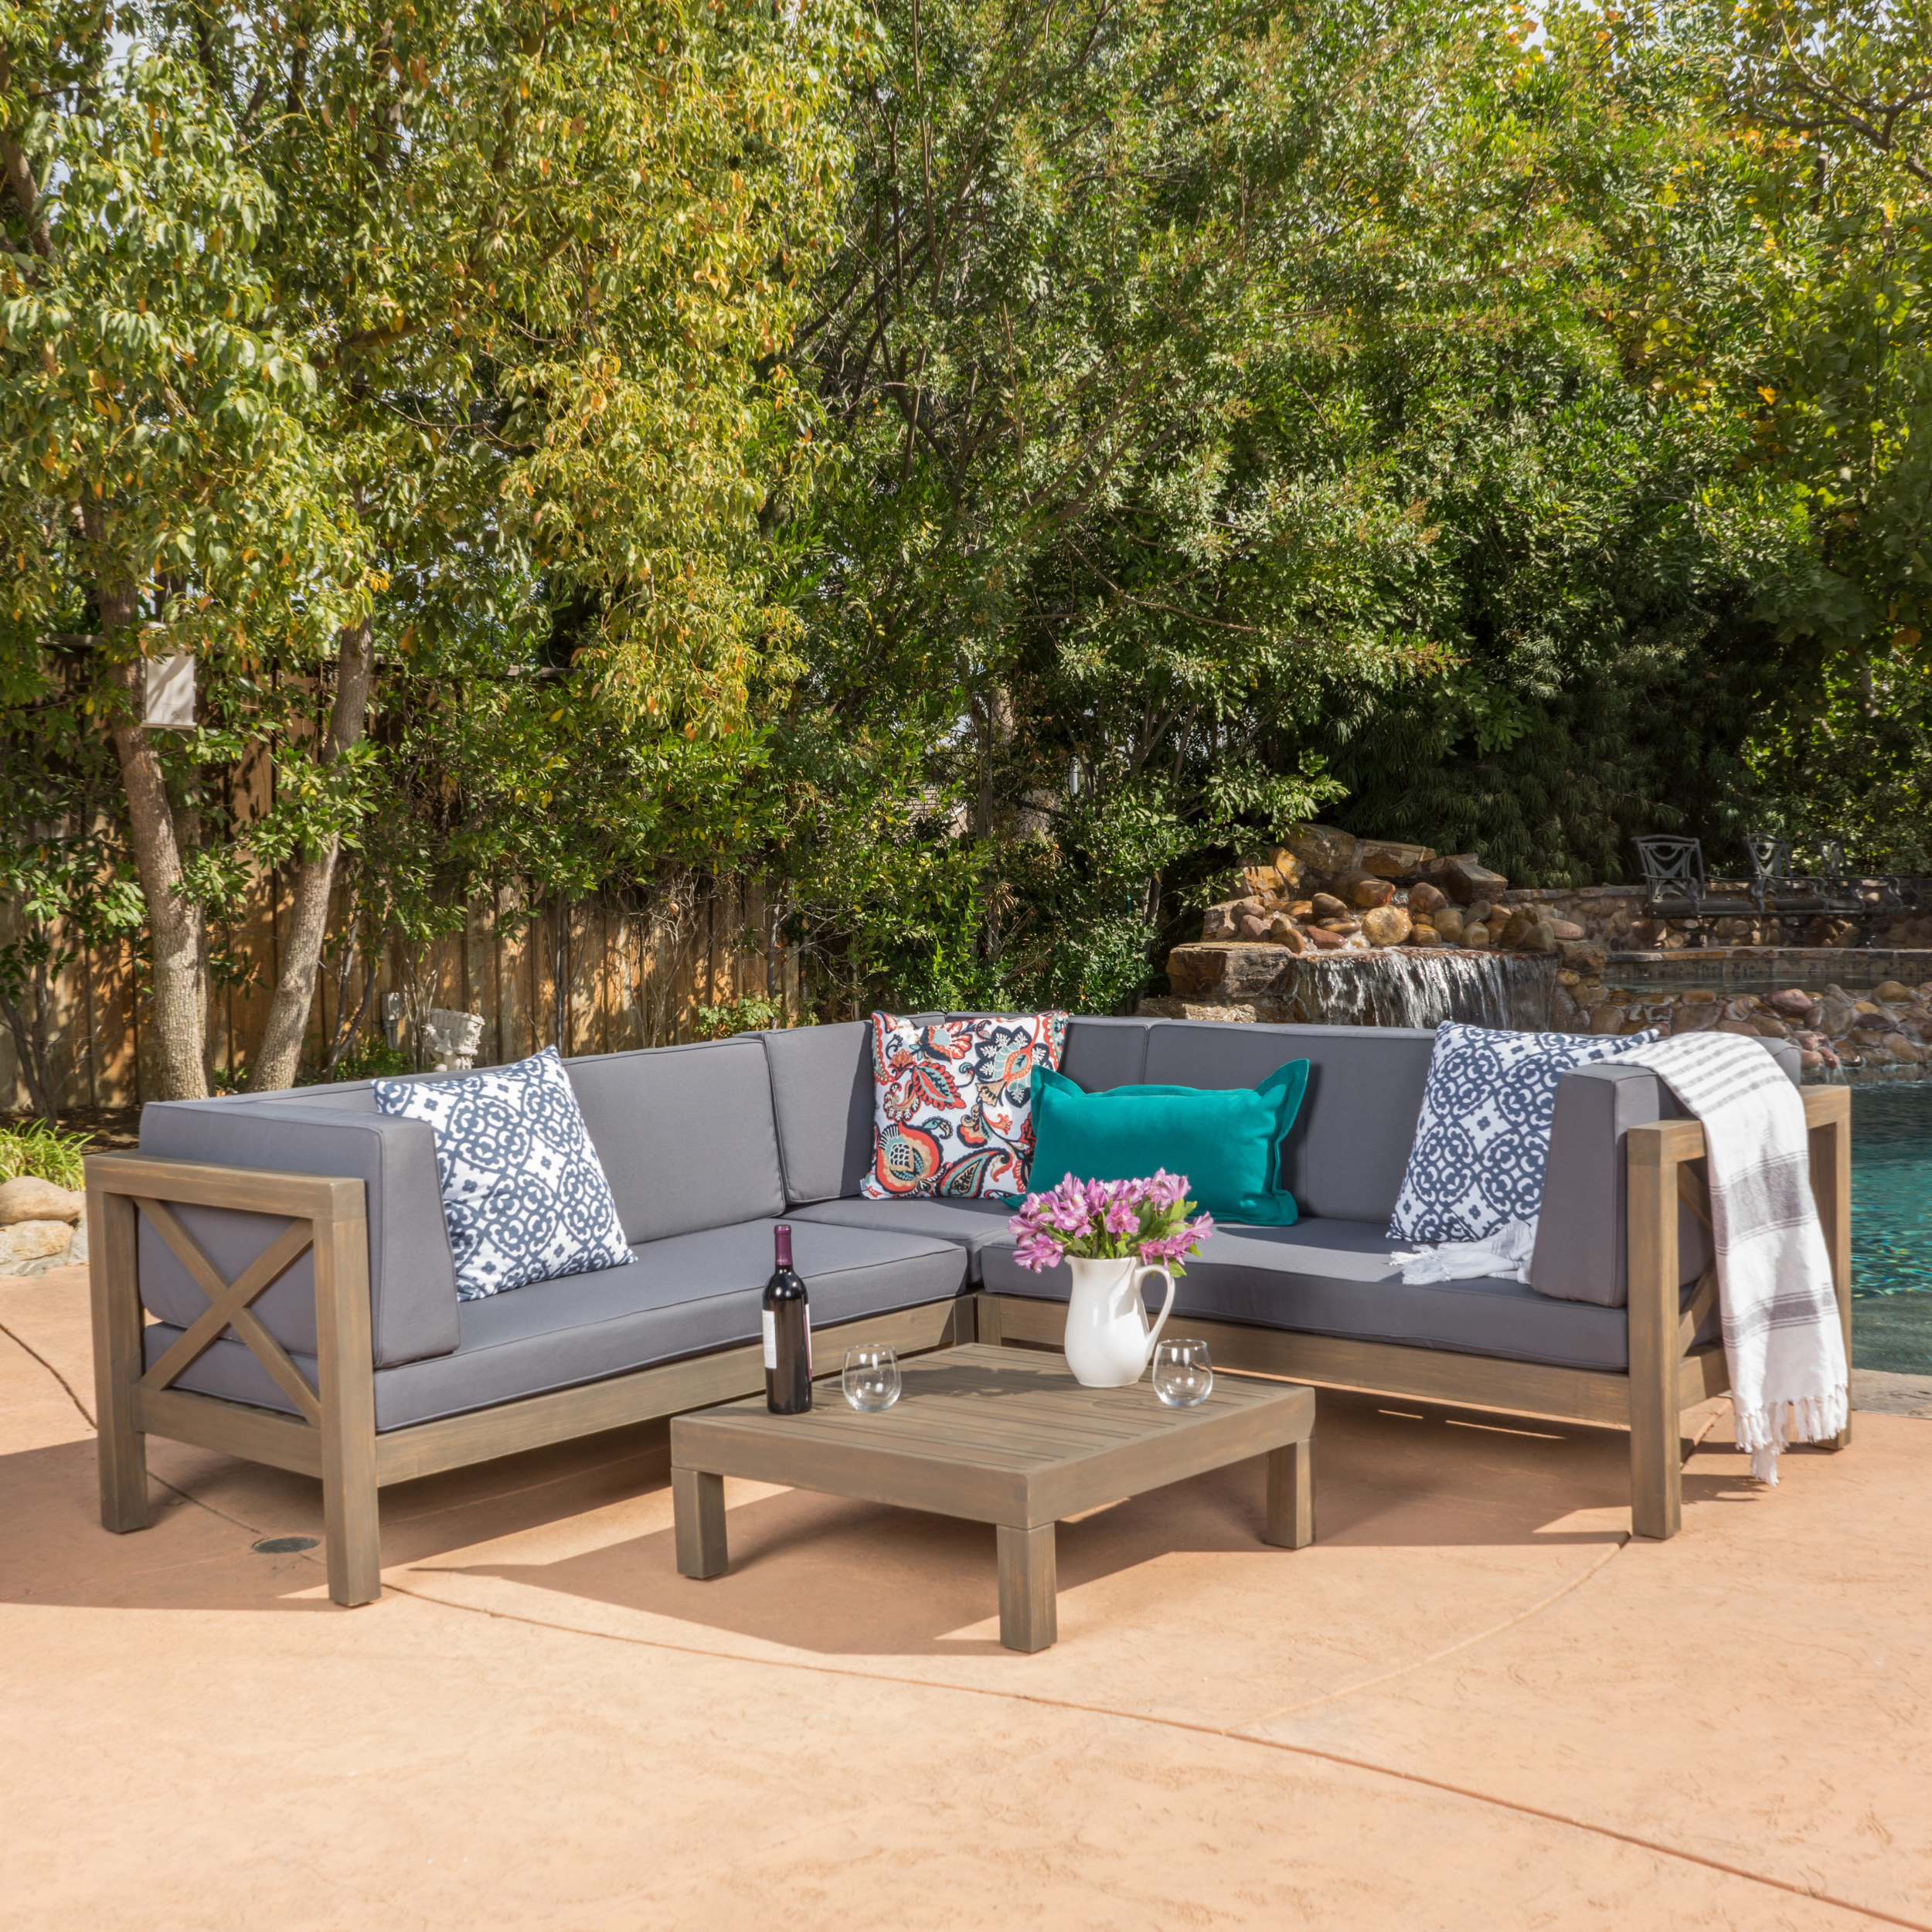 Ellison Patio Sectionals With Cushions Within Fashionable Ellison 4 Piece Sectional Seating Sofa Set With Cushions (View 11 of 20)